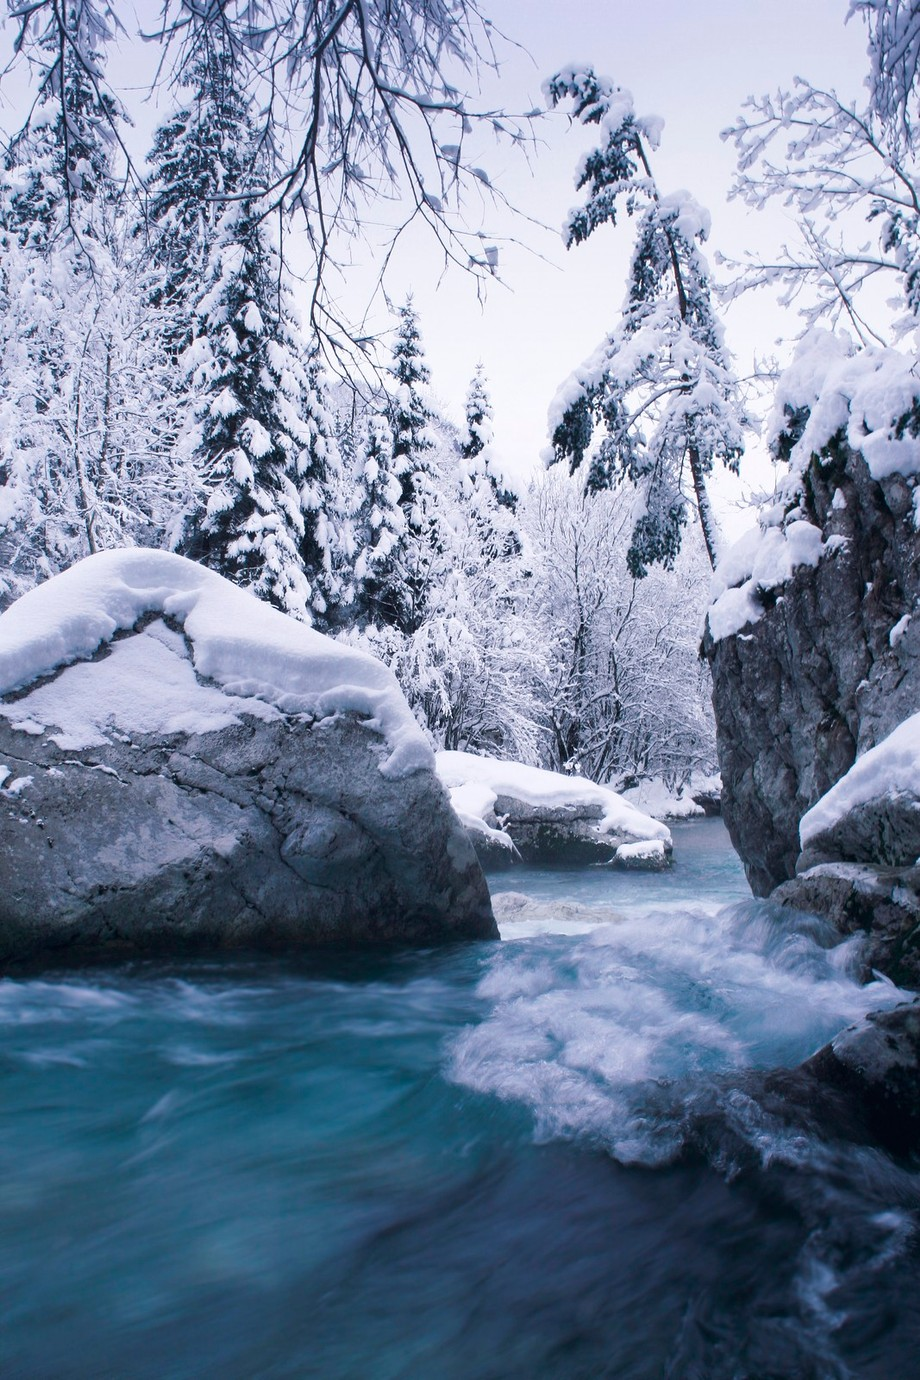 Blue winter water by Jan_Zajc - Winter Long Exposures Photo Contest